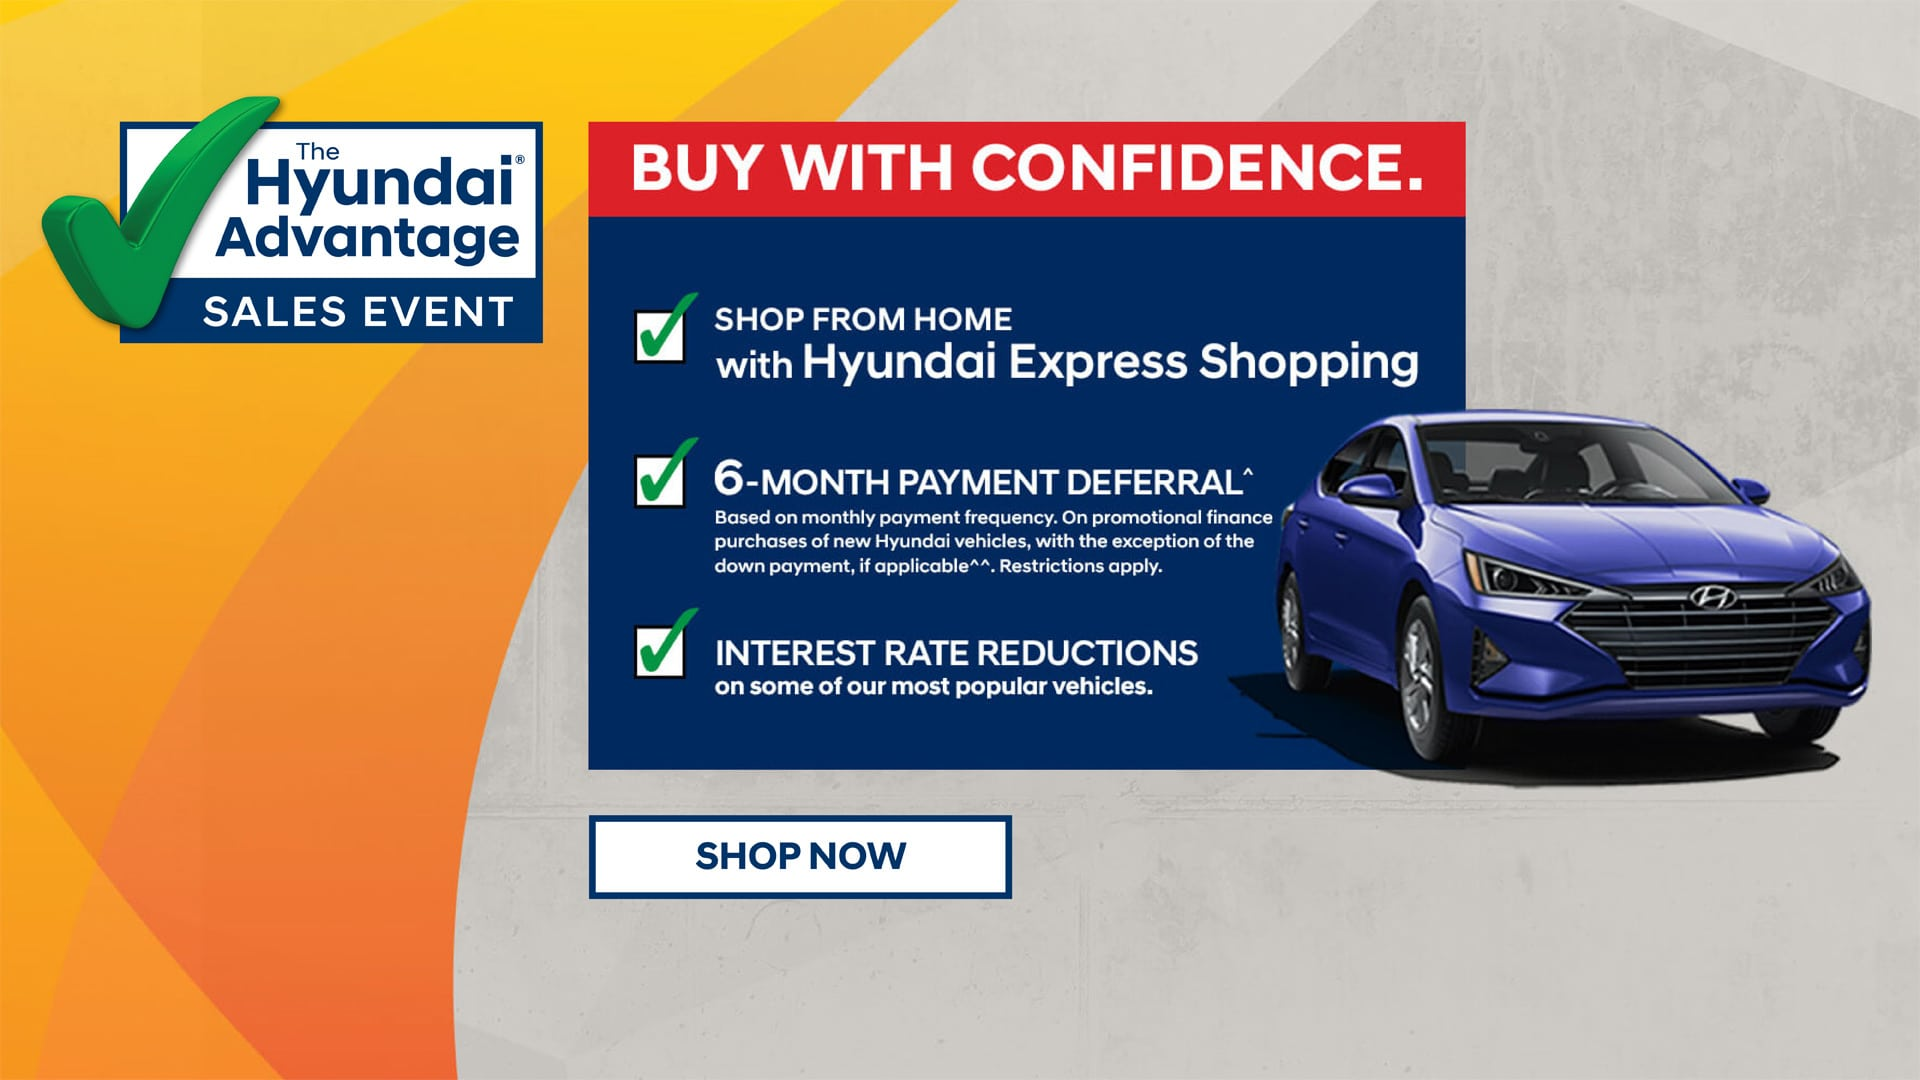 Hyundai Advantage - Buy With Confidence Offer